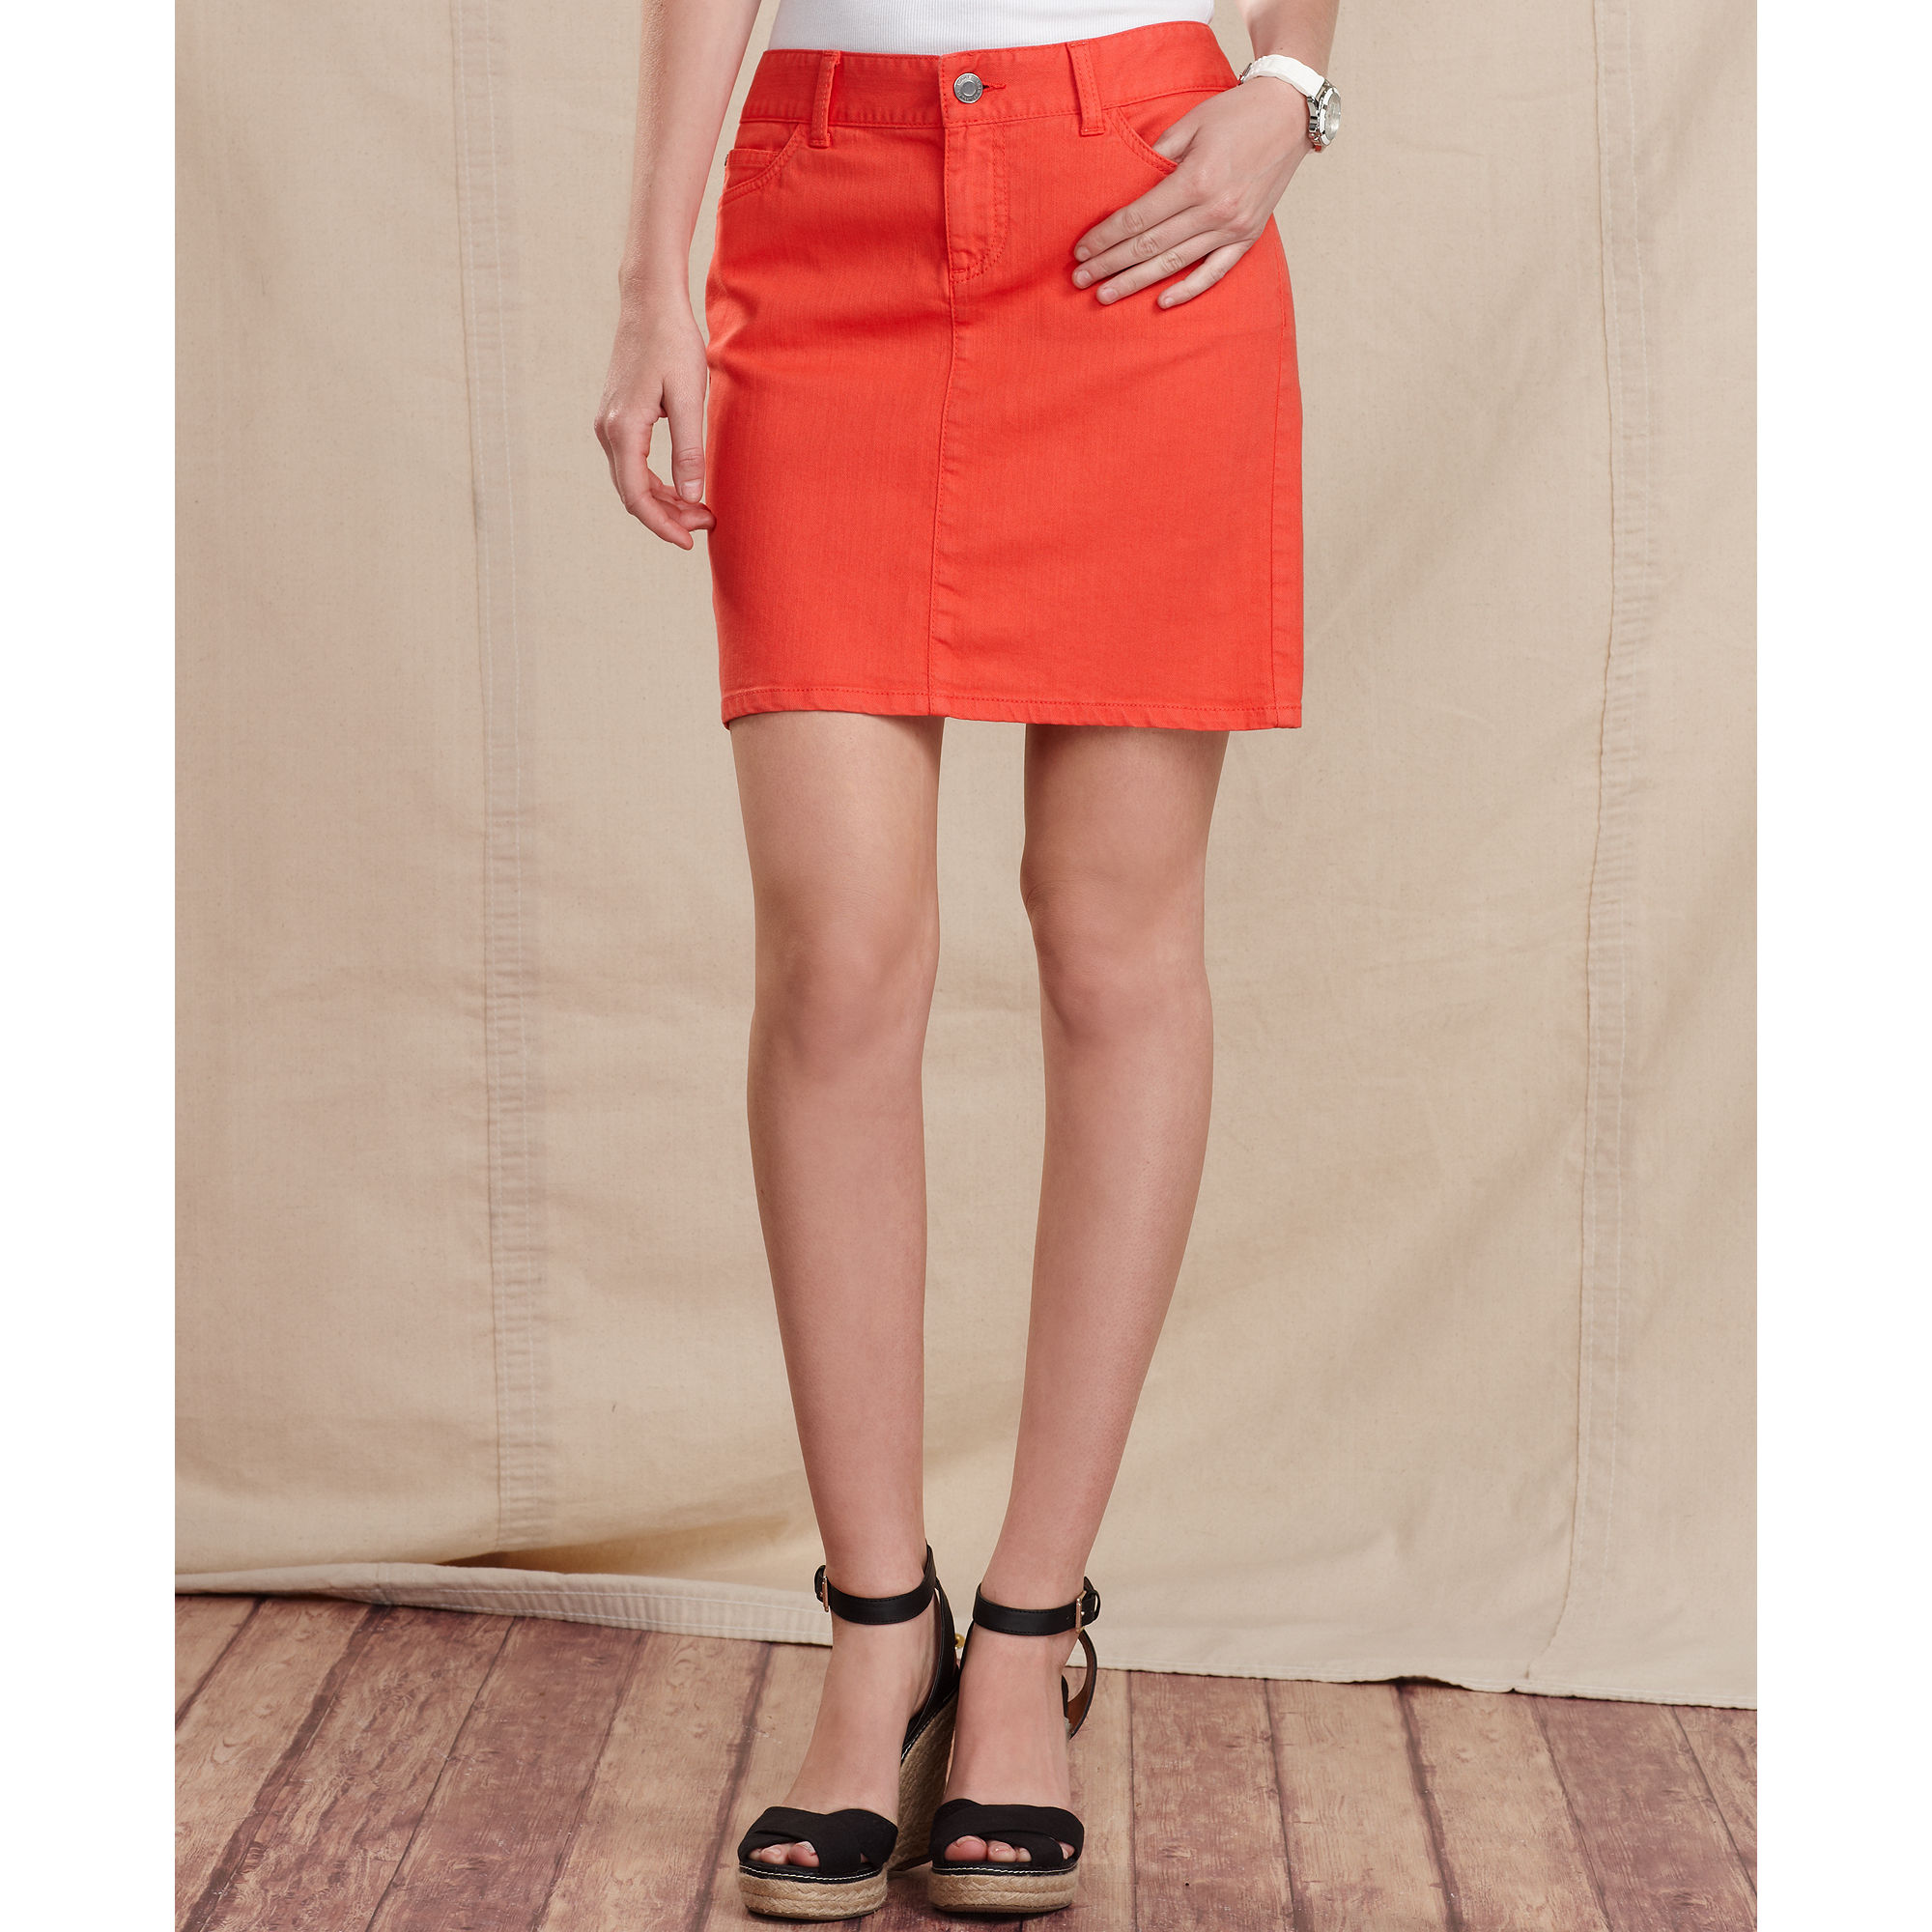 Colored Denim Skirts - Skirts